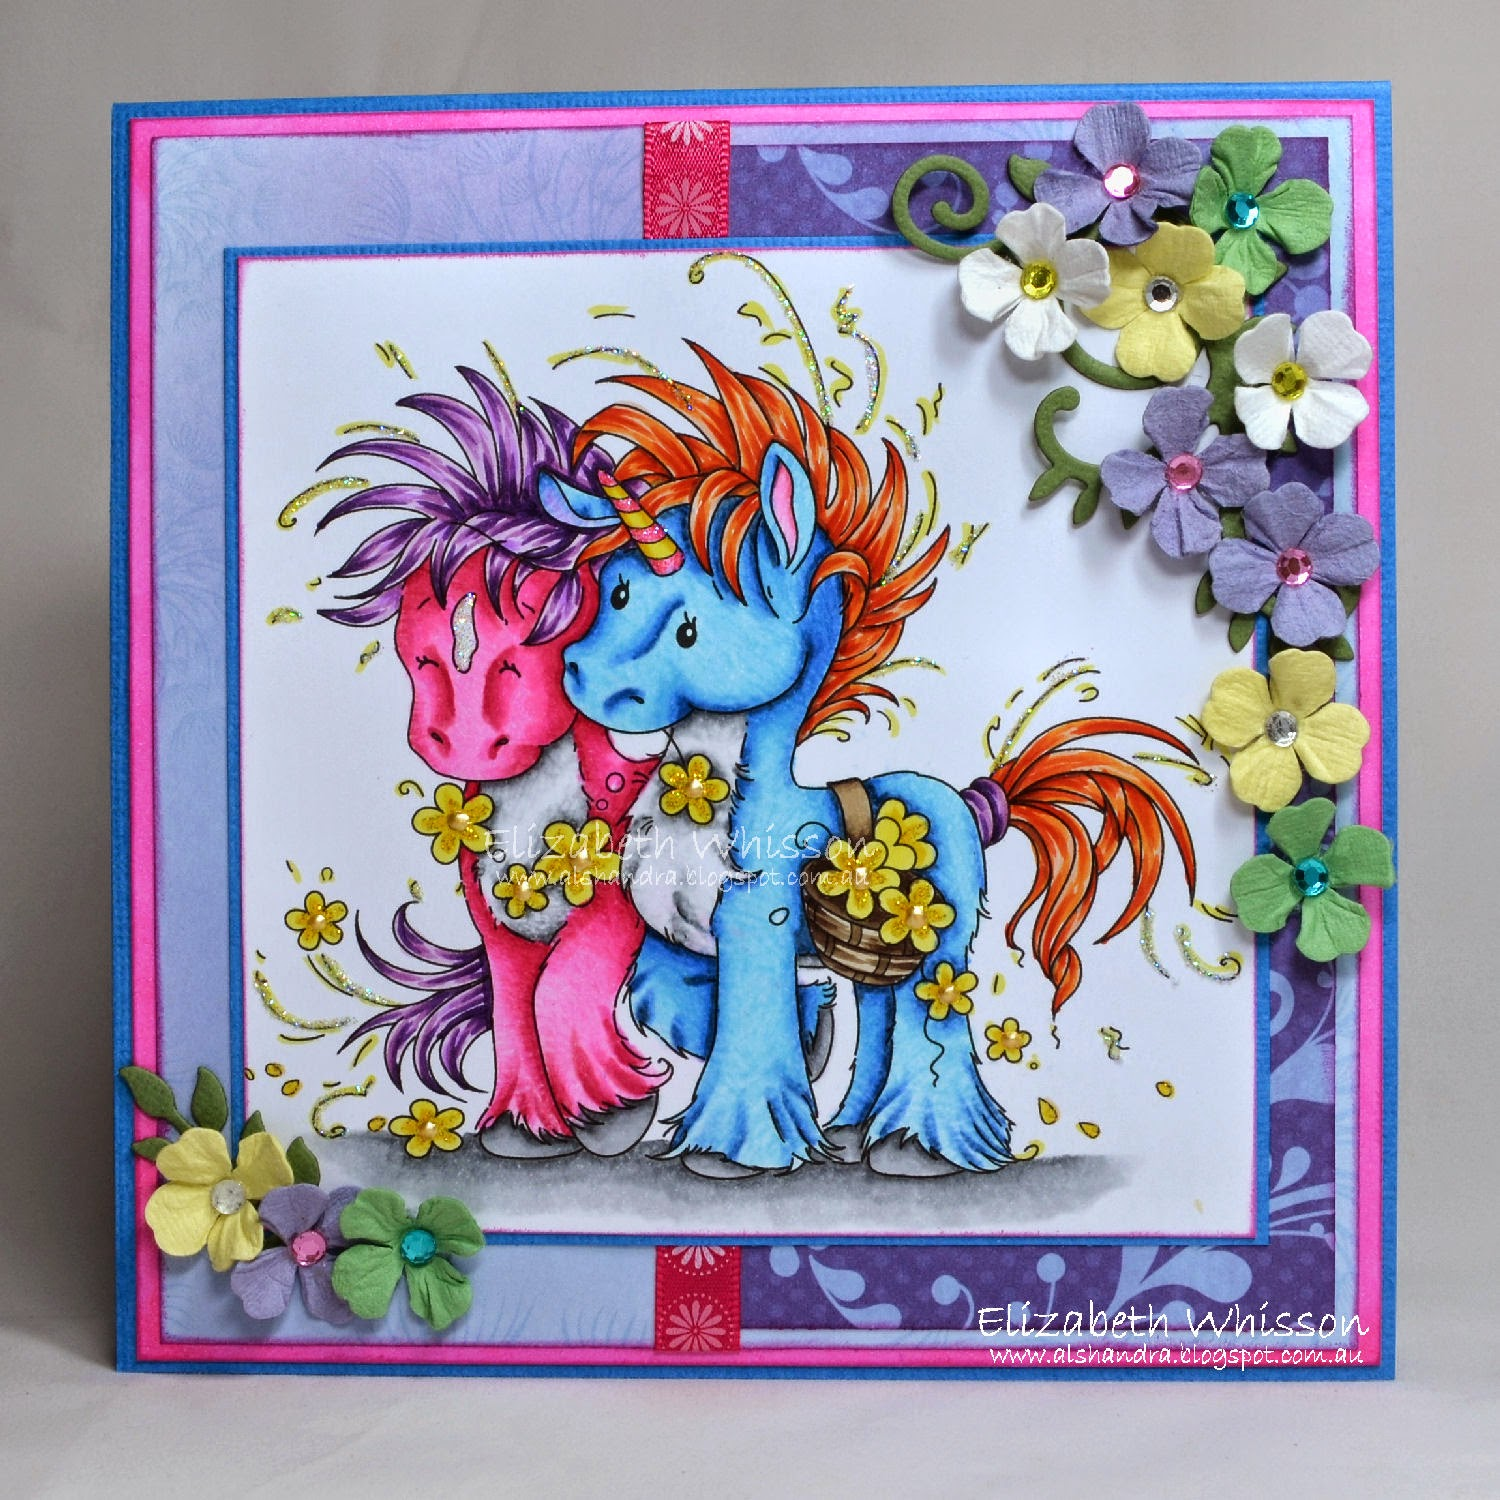 Elizabeth Whisson, Alshandra, Unicorn, pony, horse, flowers, Copics, handmade card, mythical, Whimsy Stamps, Spellbinders, ODBD, Our Daily Bread Designs, Fancy Foliage dies, Foliage Two